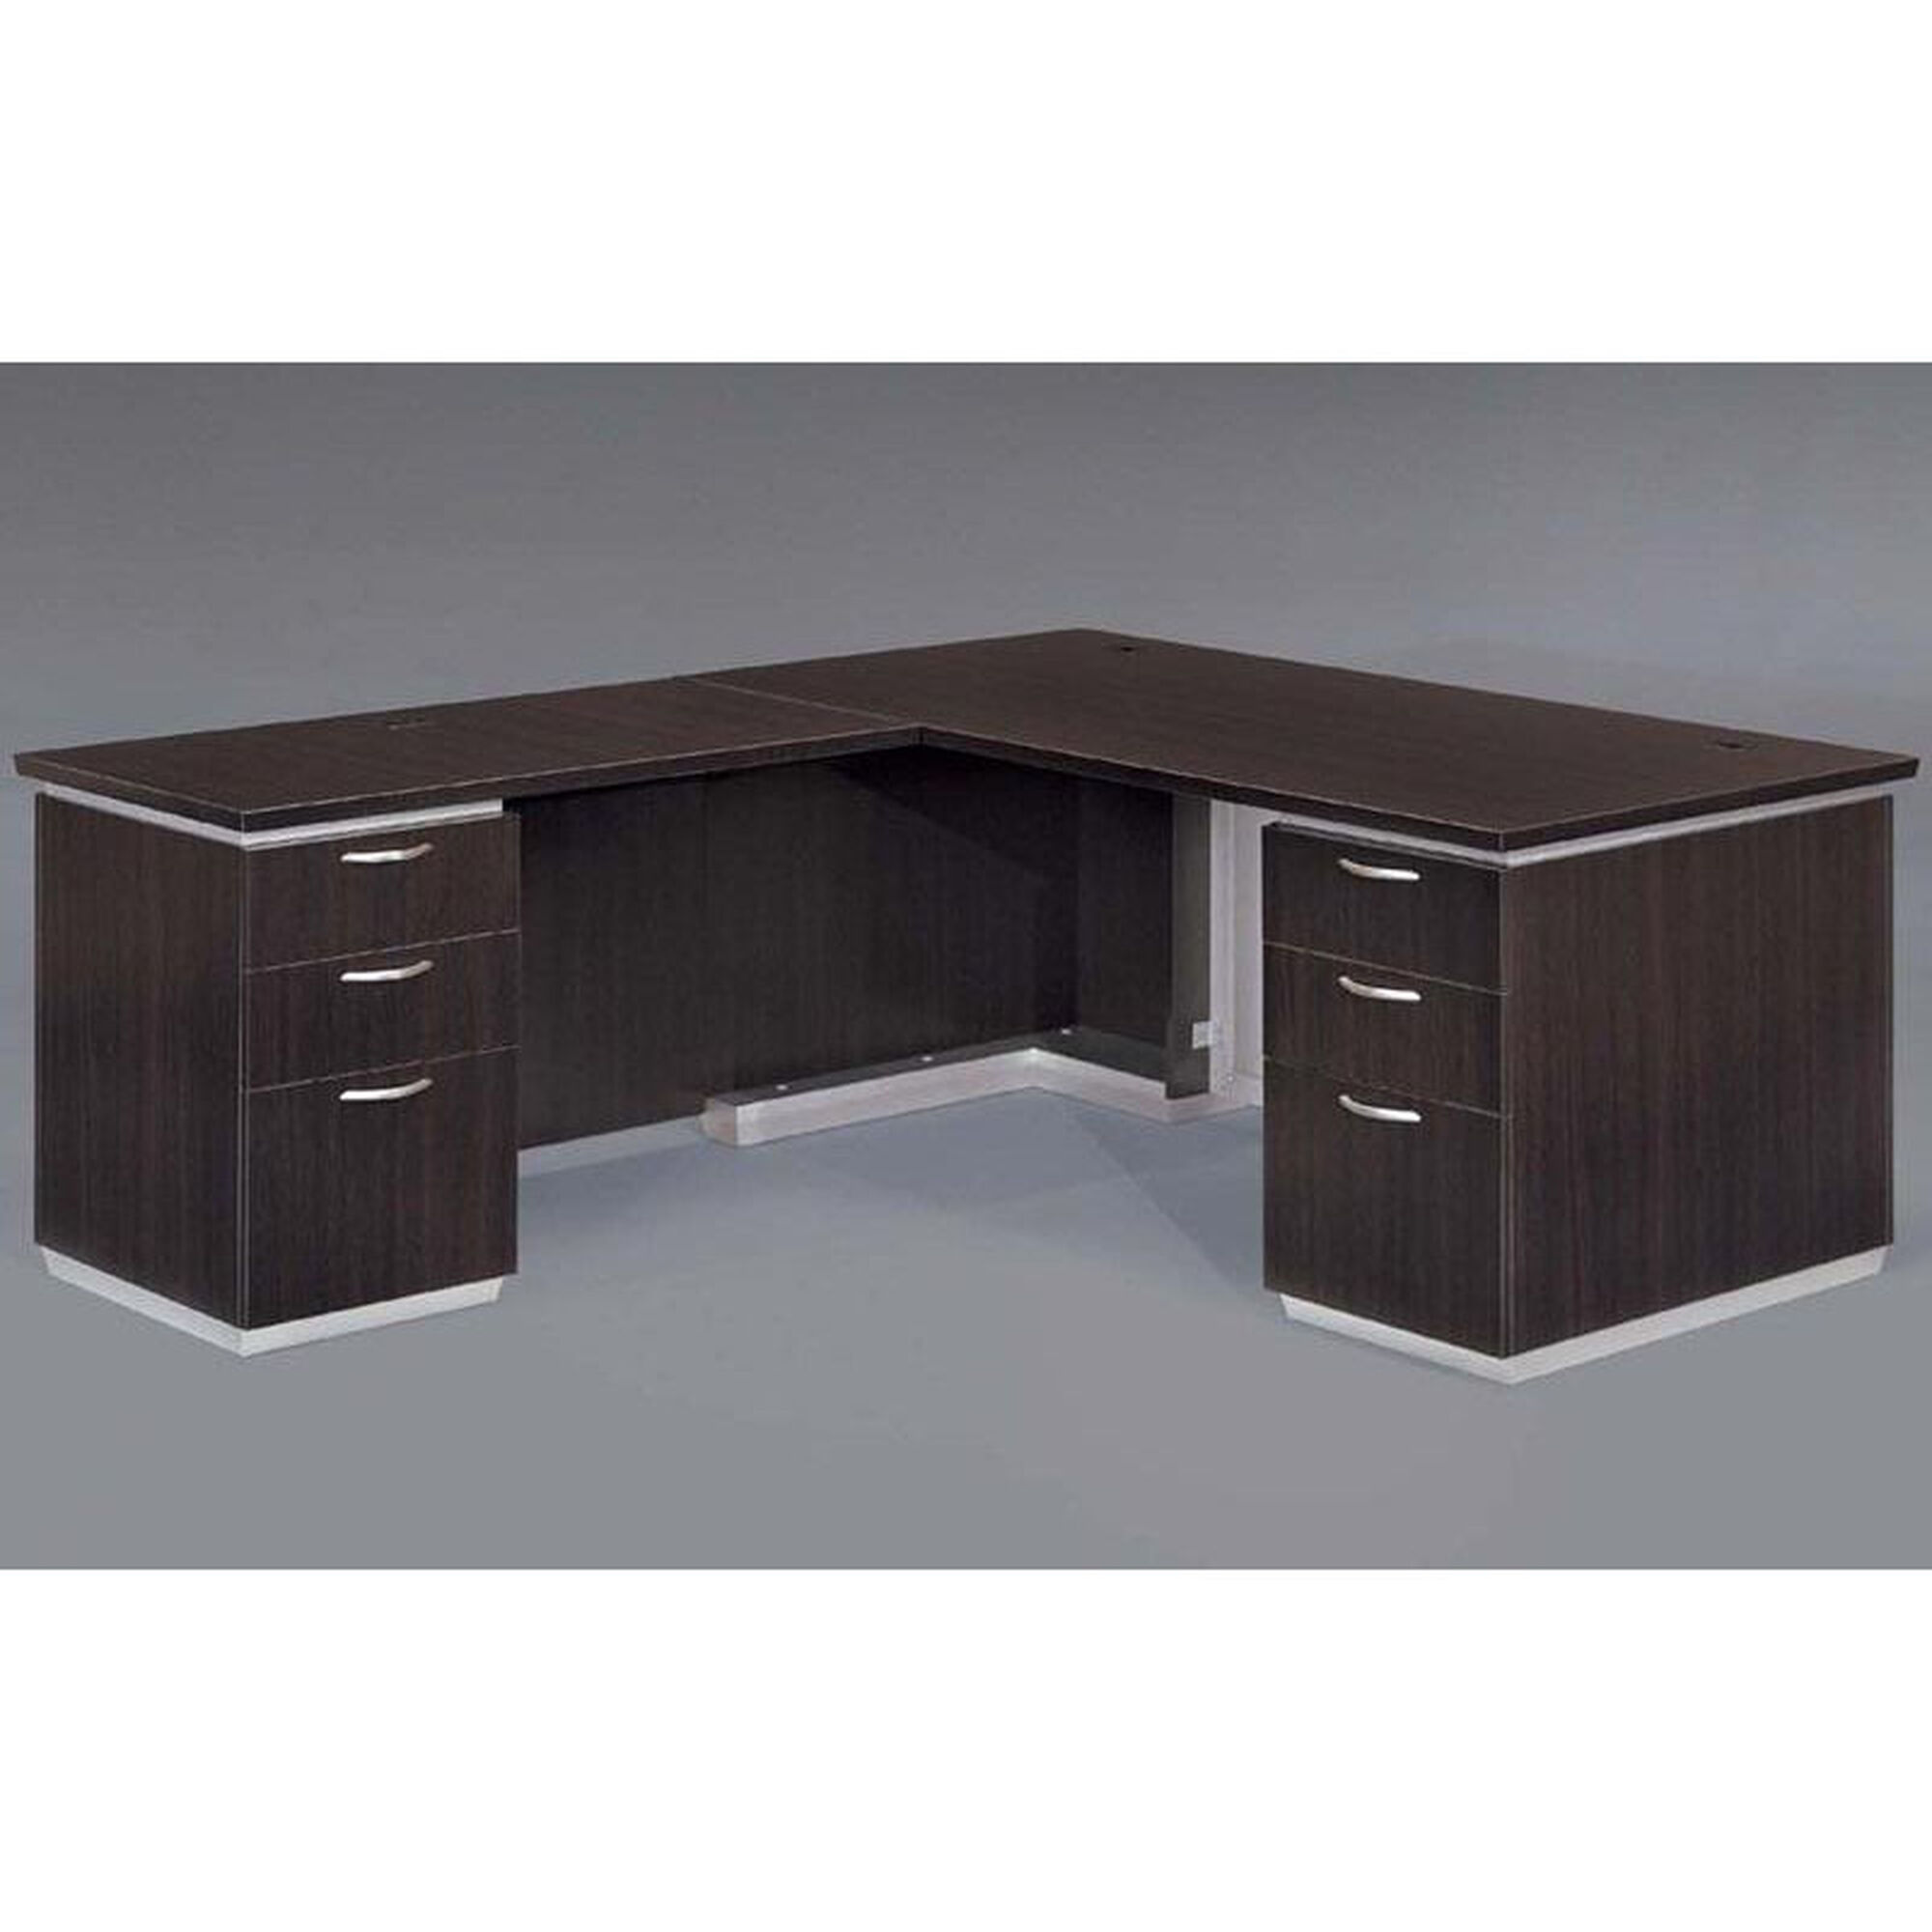 dmi slf office pa adc used ael dealer page cqi layout furniture products new slo philadelphia